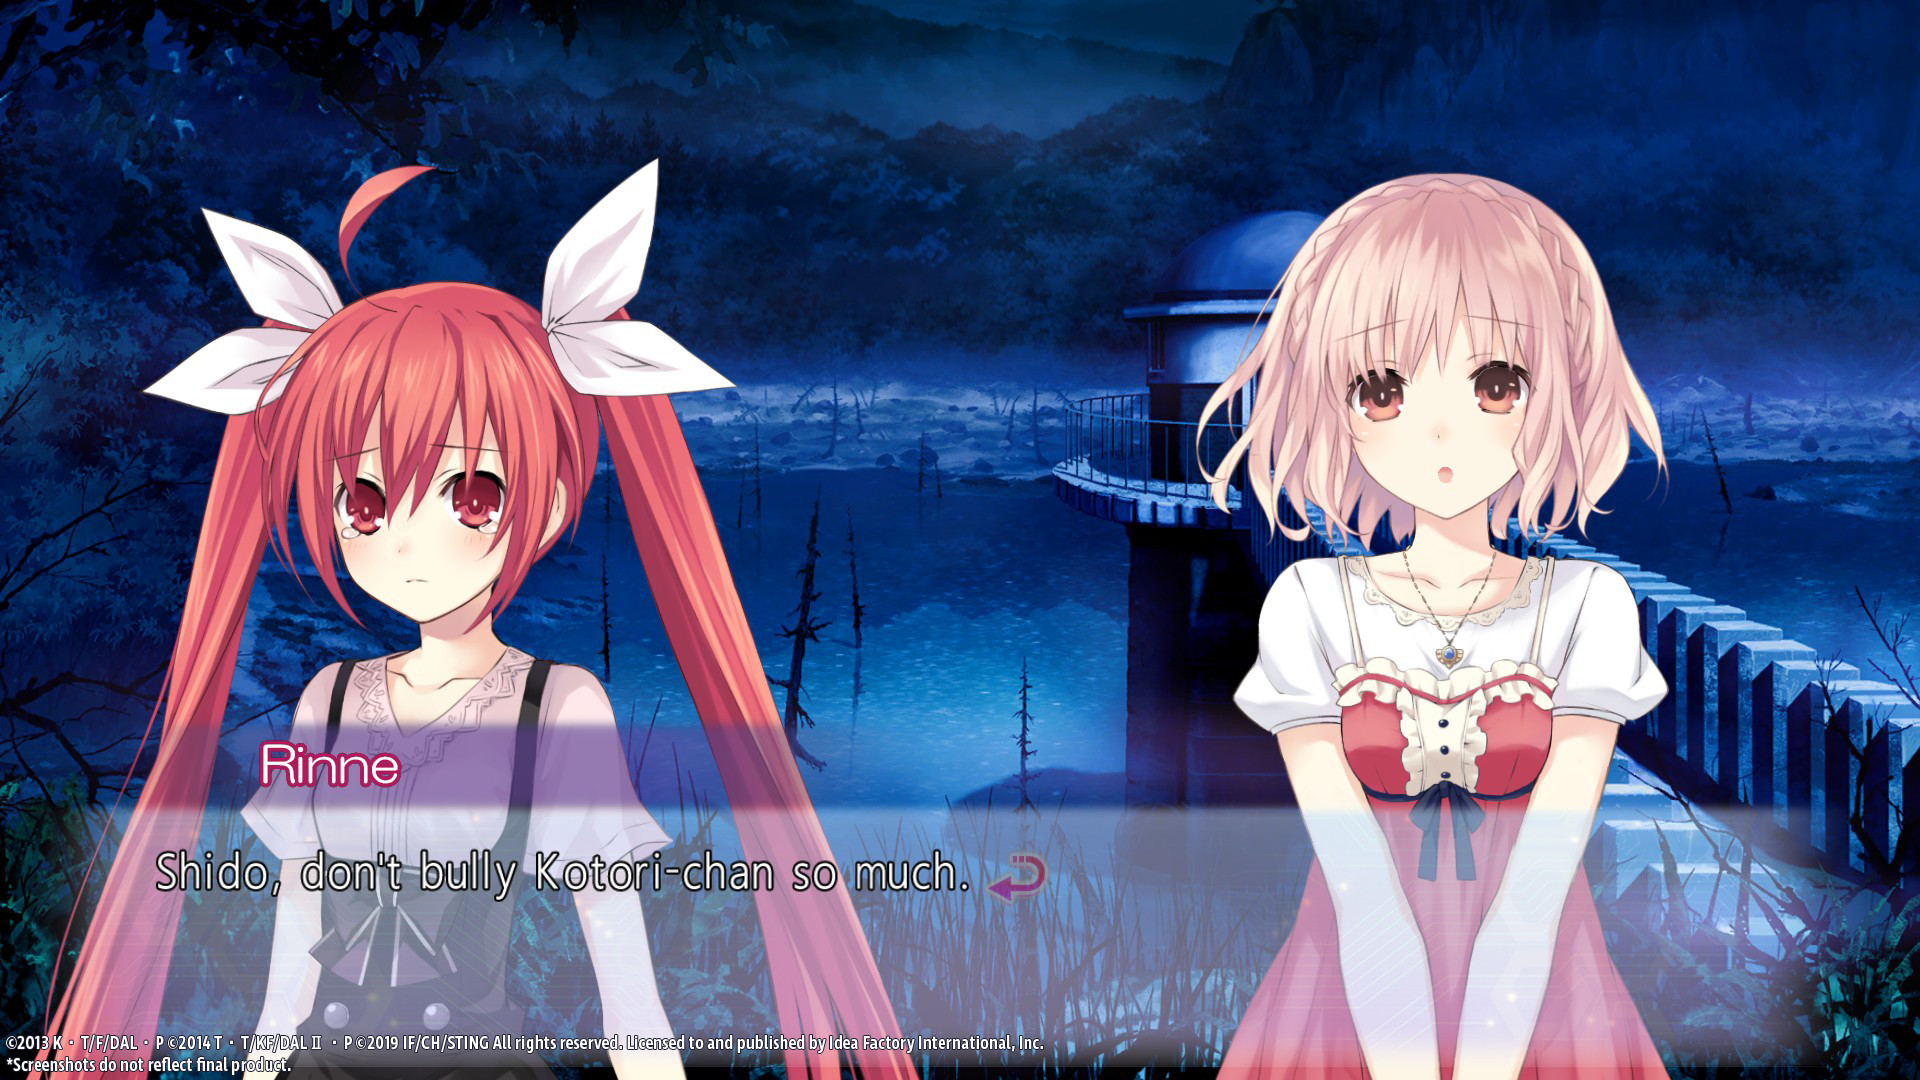 anime, Compile Heart, DATE A LIVE: Rio Reincarnation, DATE A LIVE: Rio Reincarnation Review, Idea Factory, PS4, PS4 Review, Sexual Content, simulation, Sting, Visual Novel